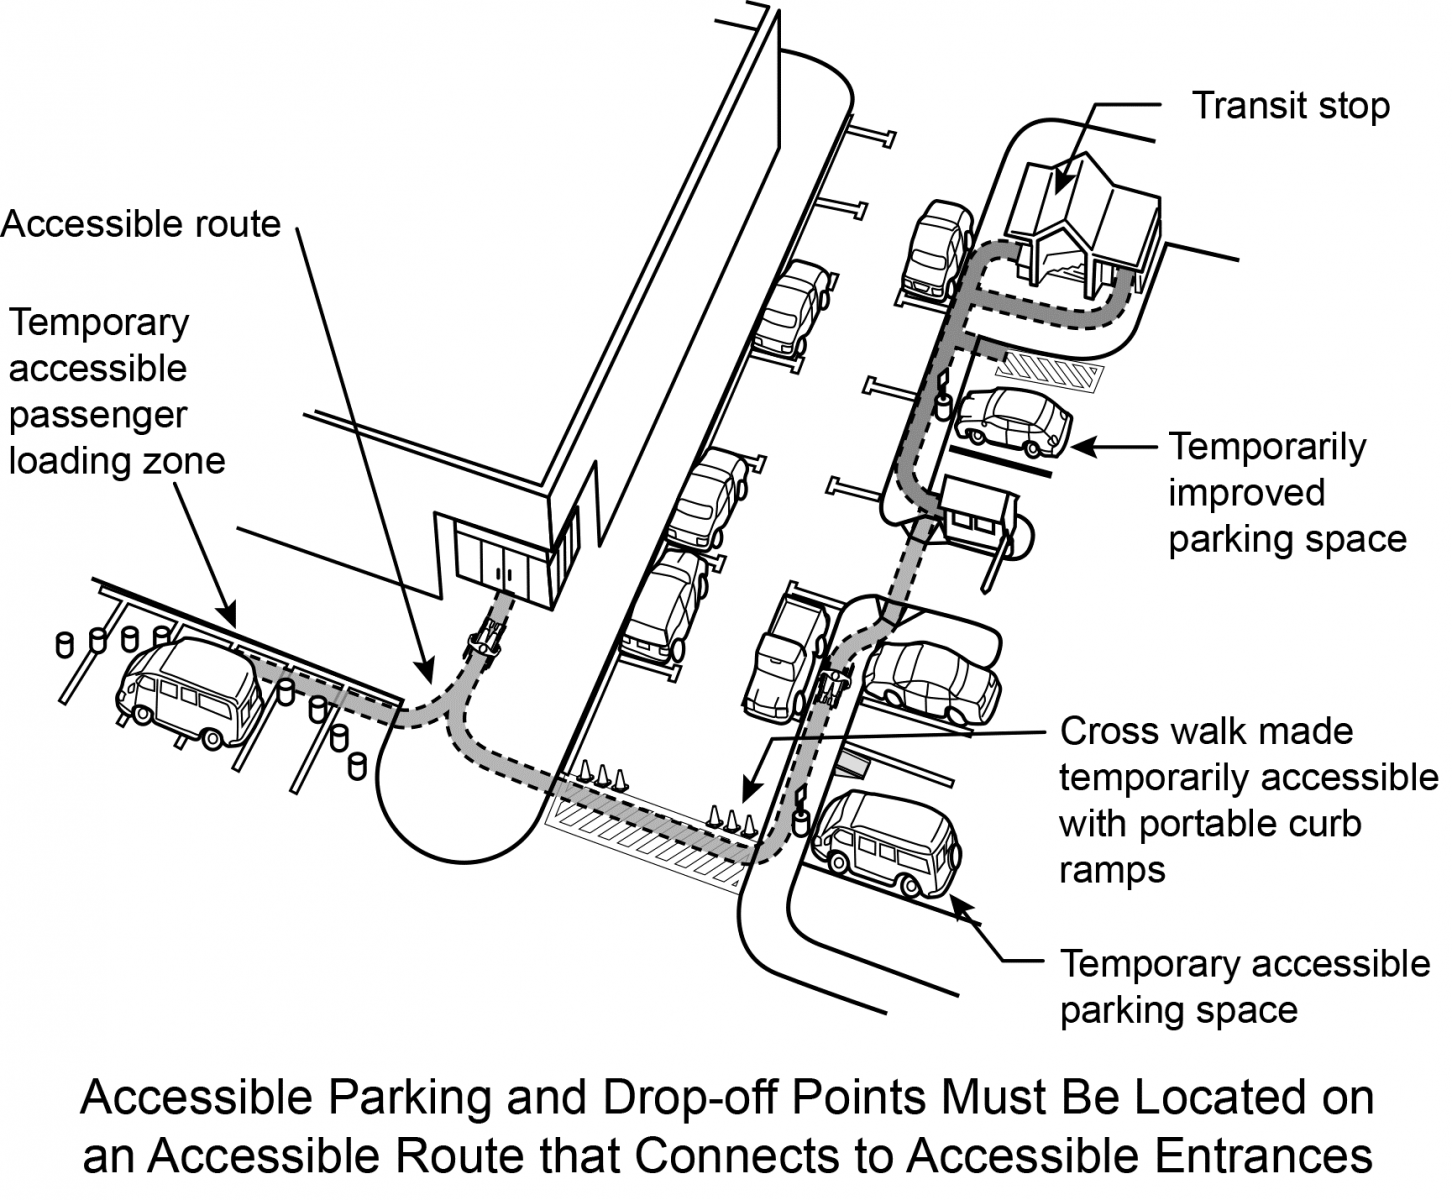 Figure 14: The accessible route connects accessible parking, drop-off points, and entrances.